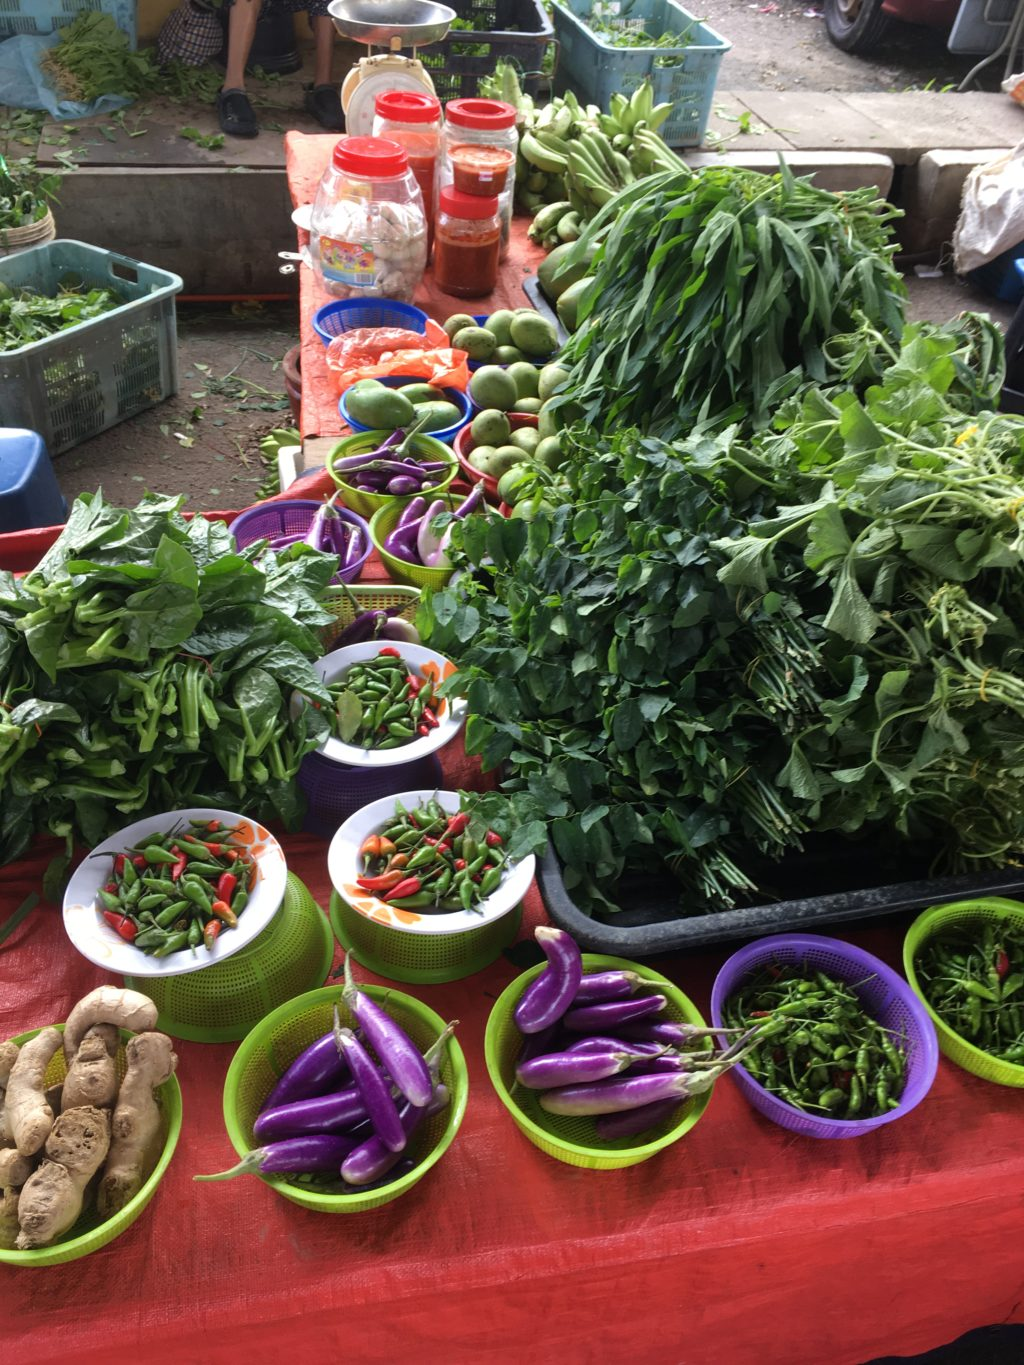 Vegetables stall at Pasar Borneo with basket of brinjals, midin and paku-pakis